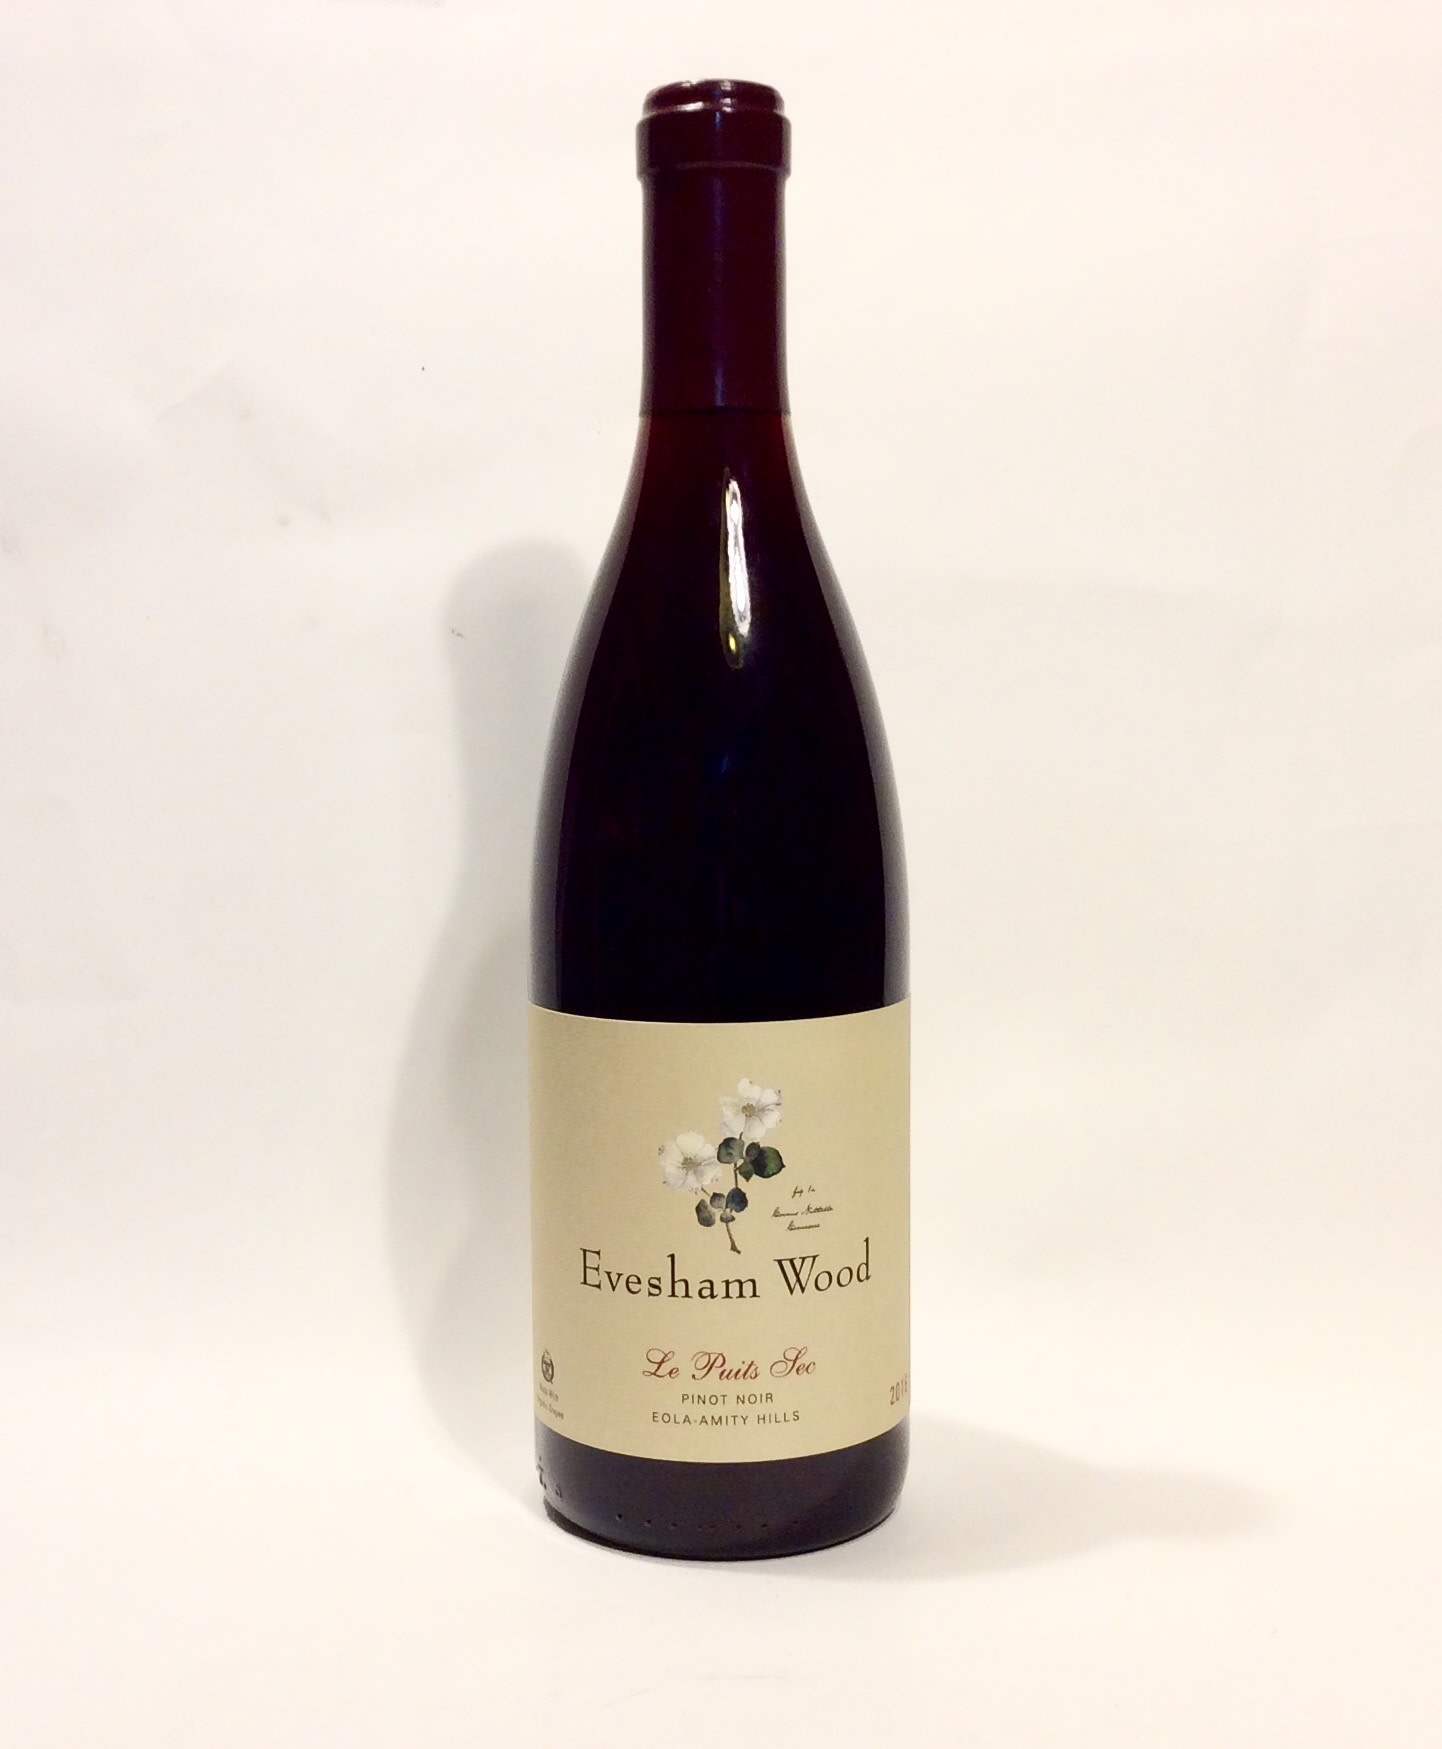 Evesham Wood Estate Pinot Noir Le Puits 2016 (750 ml)